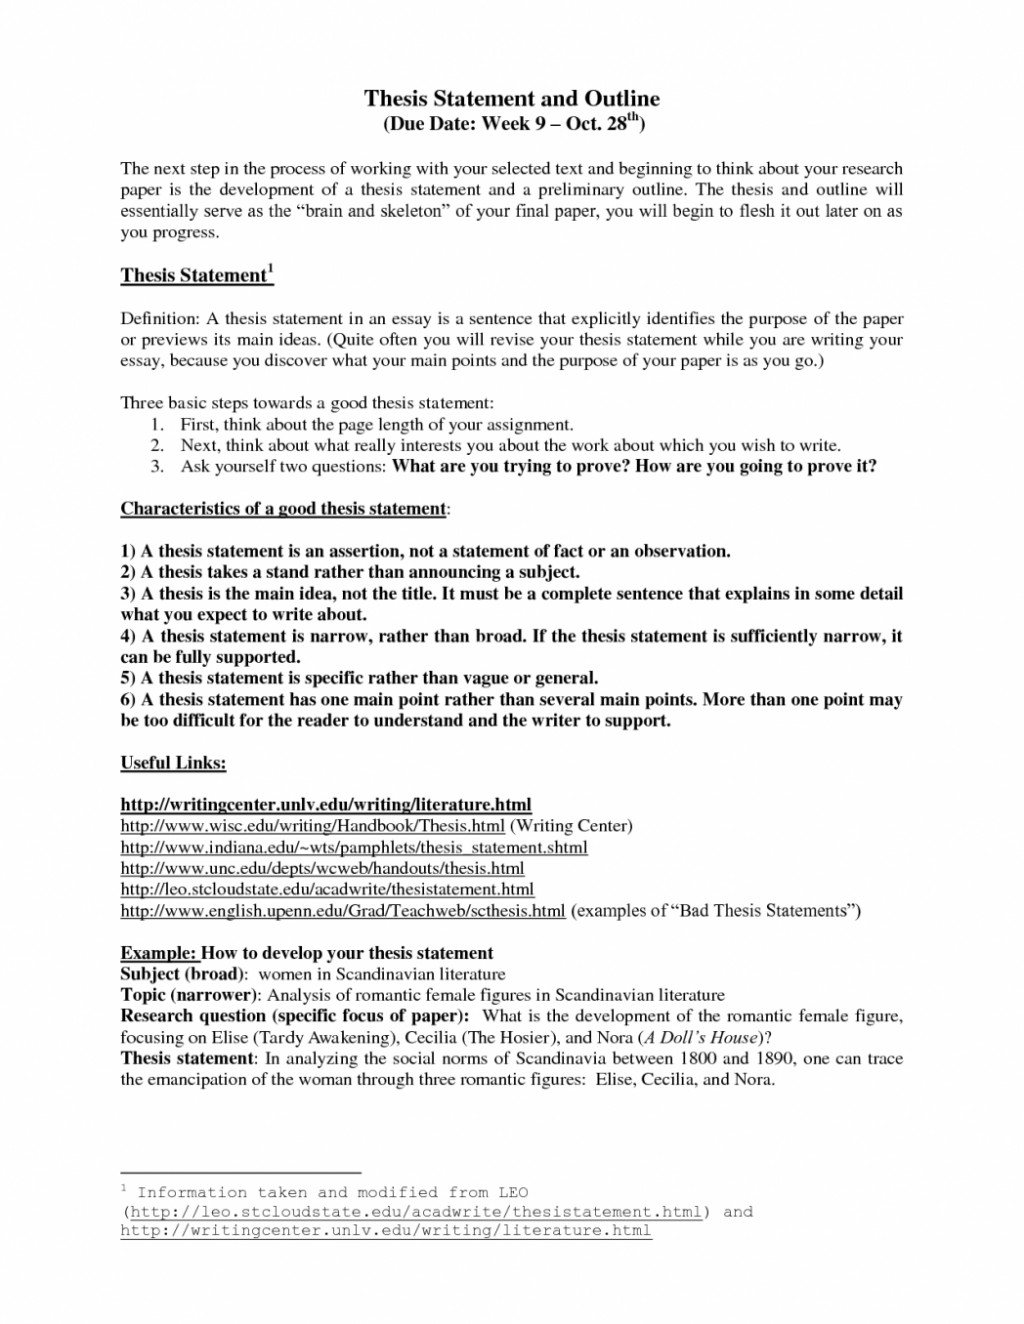 015 Thesis Statement Essay Sample Narrative Cover Letter Example Essays And Outline Template Wx8 Writing Powerpoint Ppt Step By 4th Grade About Being Judged Quizlet Someone Else Stirring Definition Examples For Argumentative Large